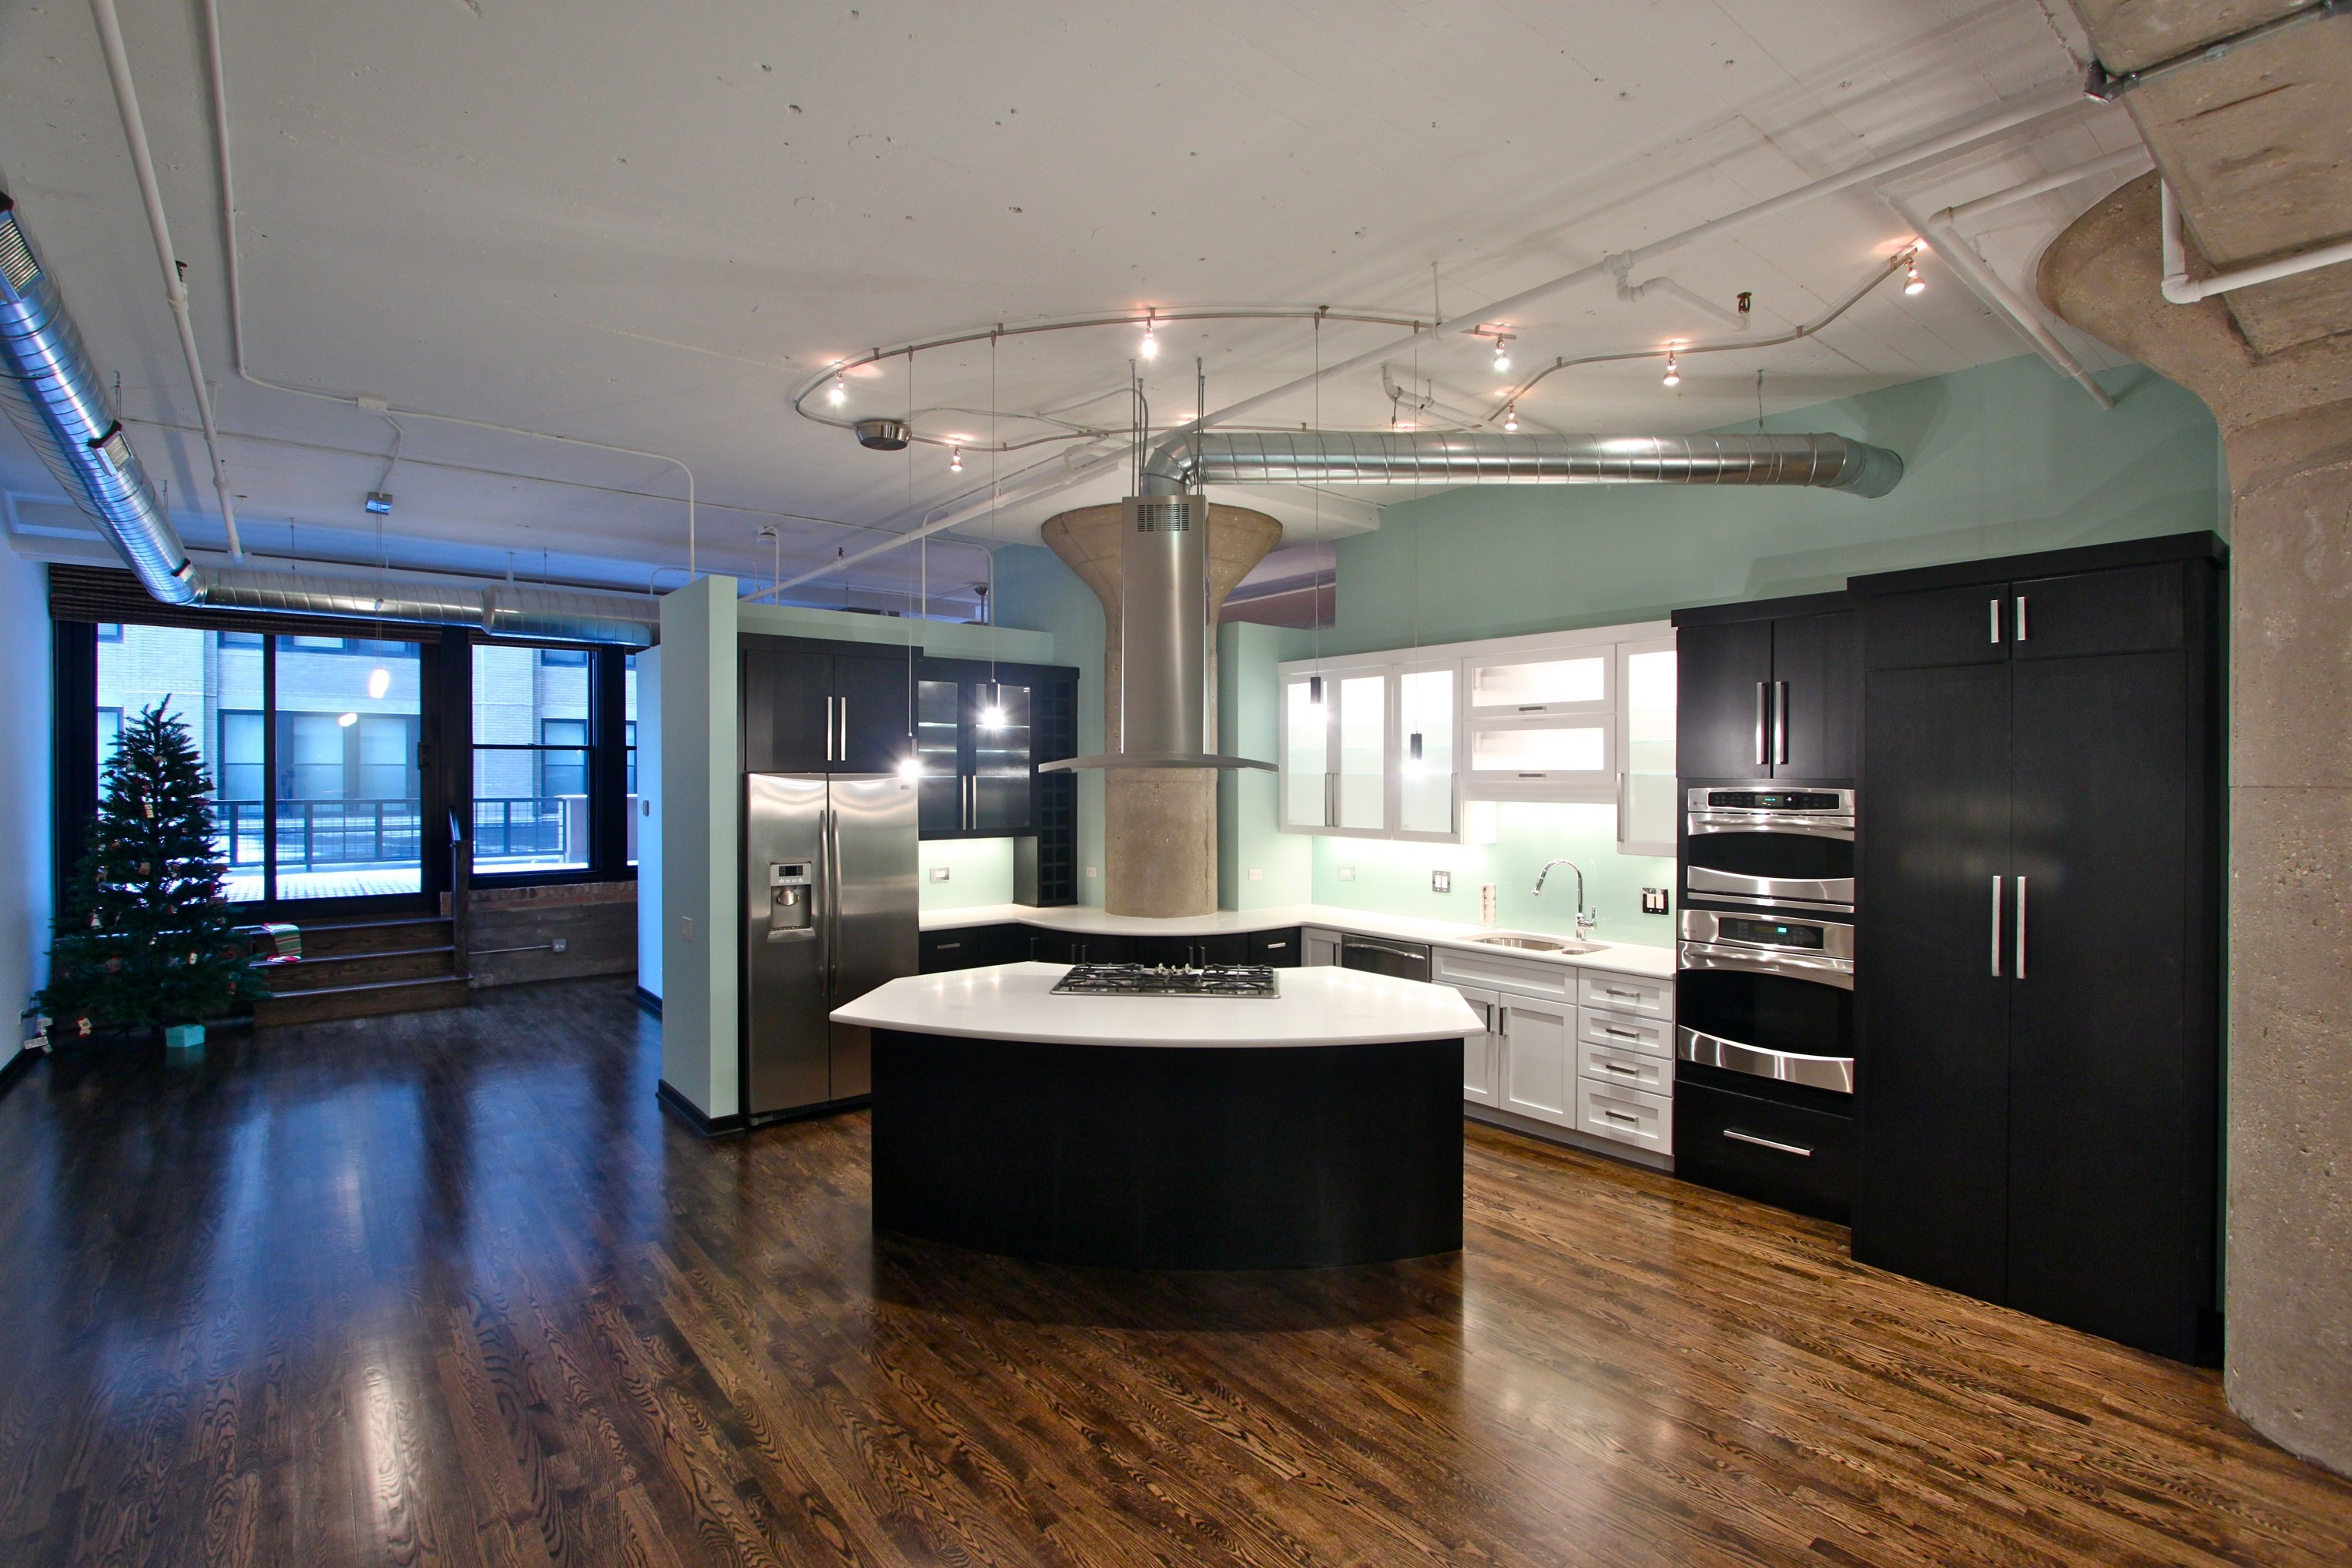 remodeling services in glenview deerfield northbrook il